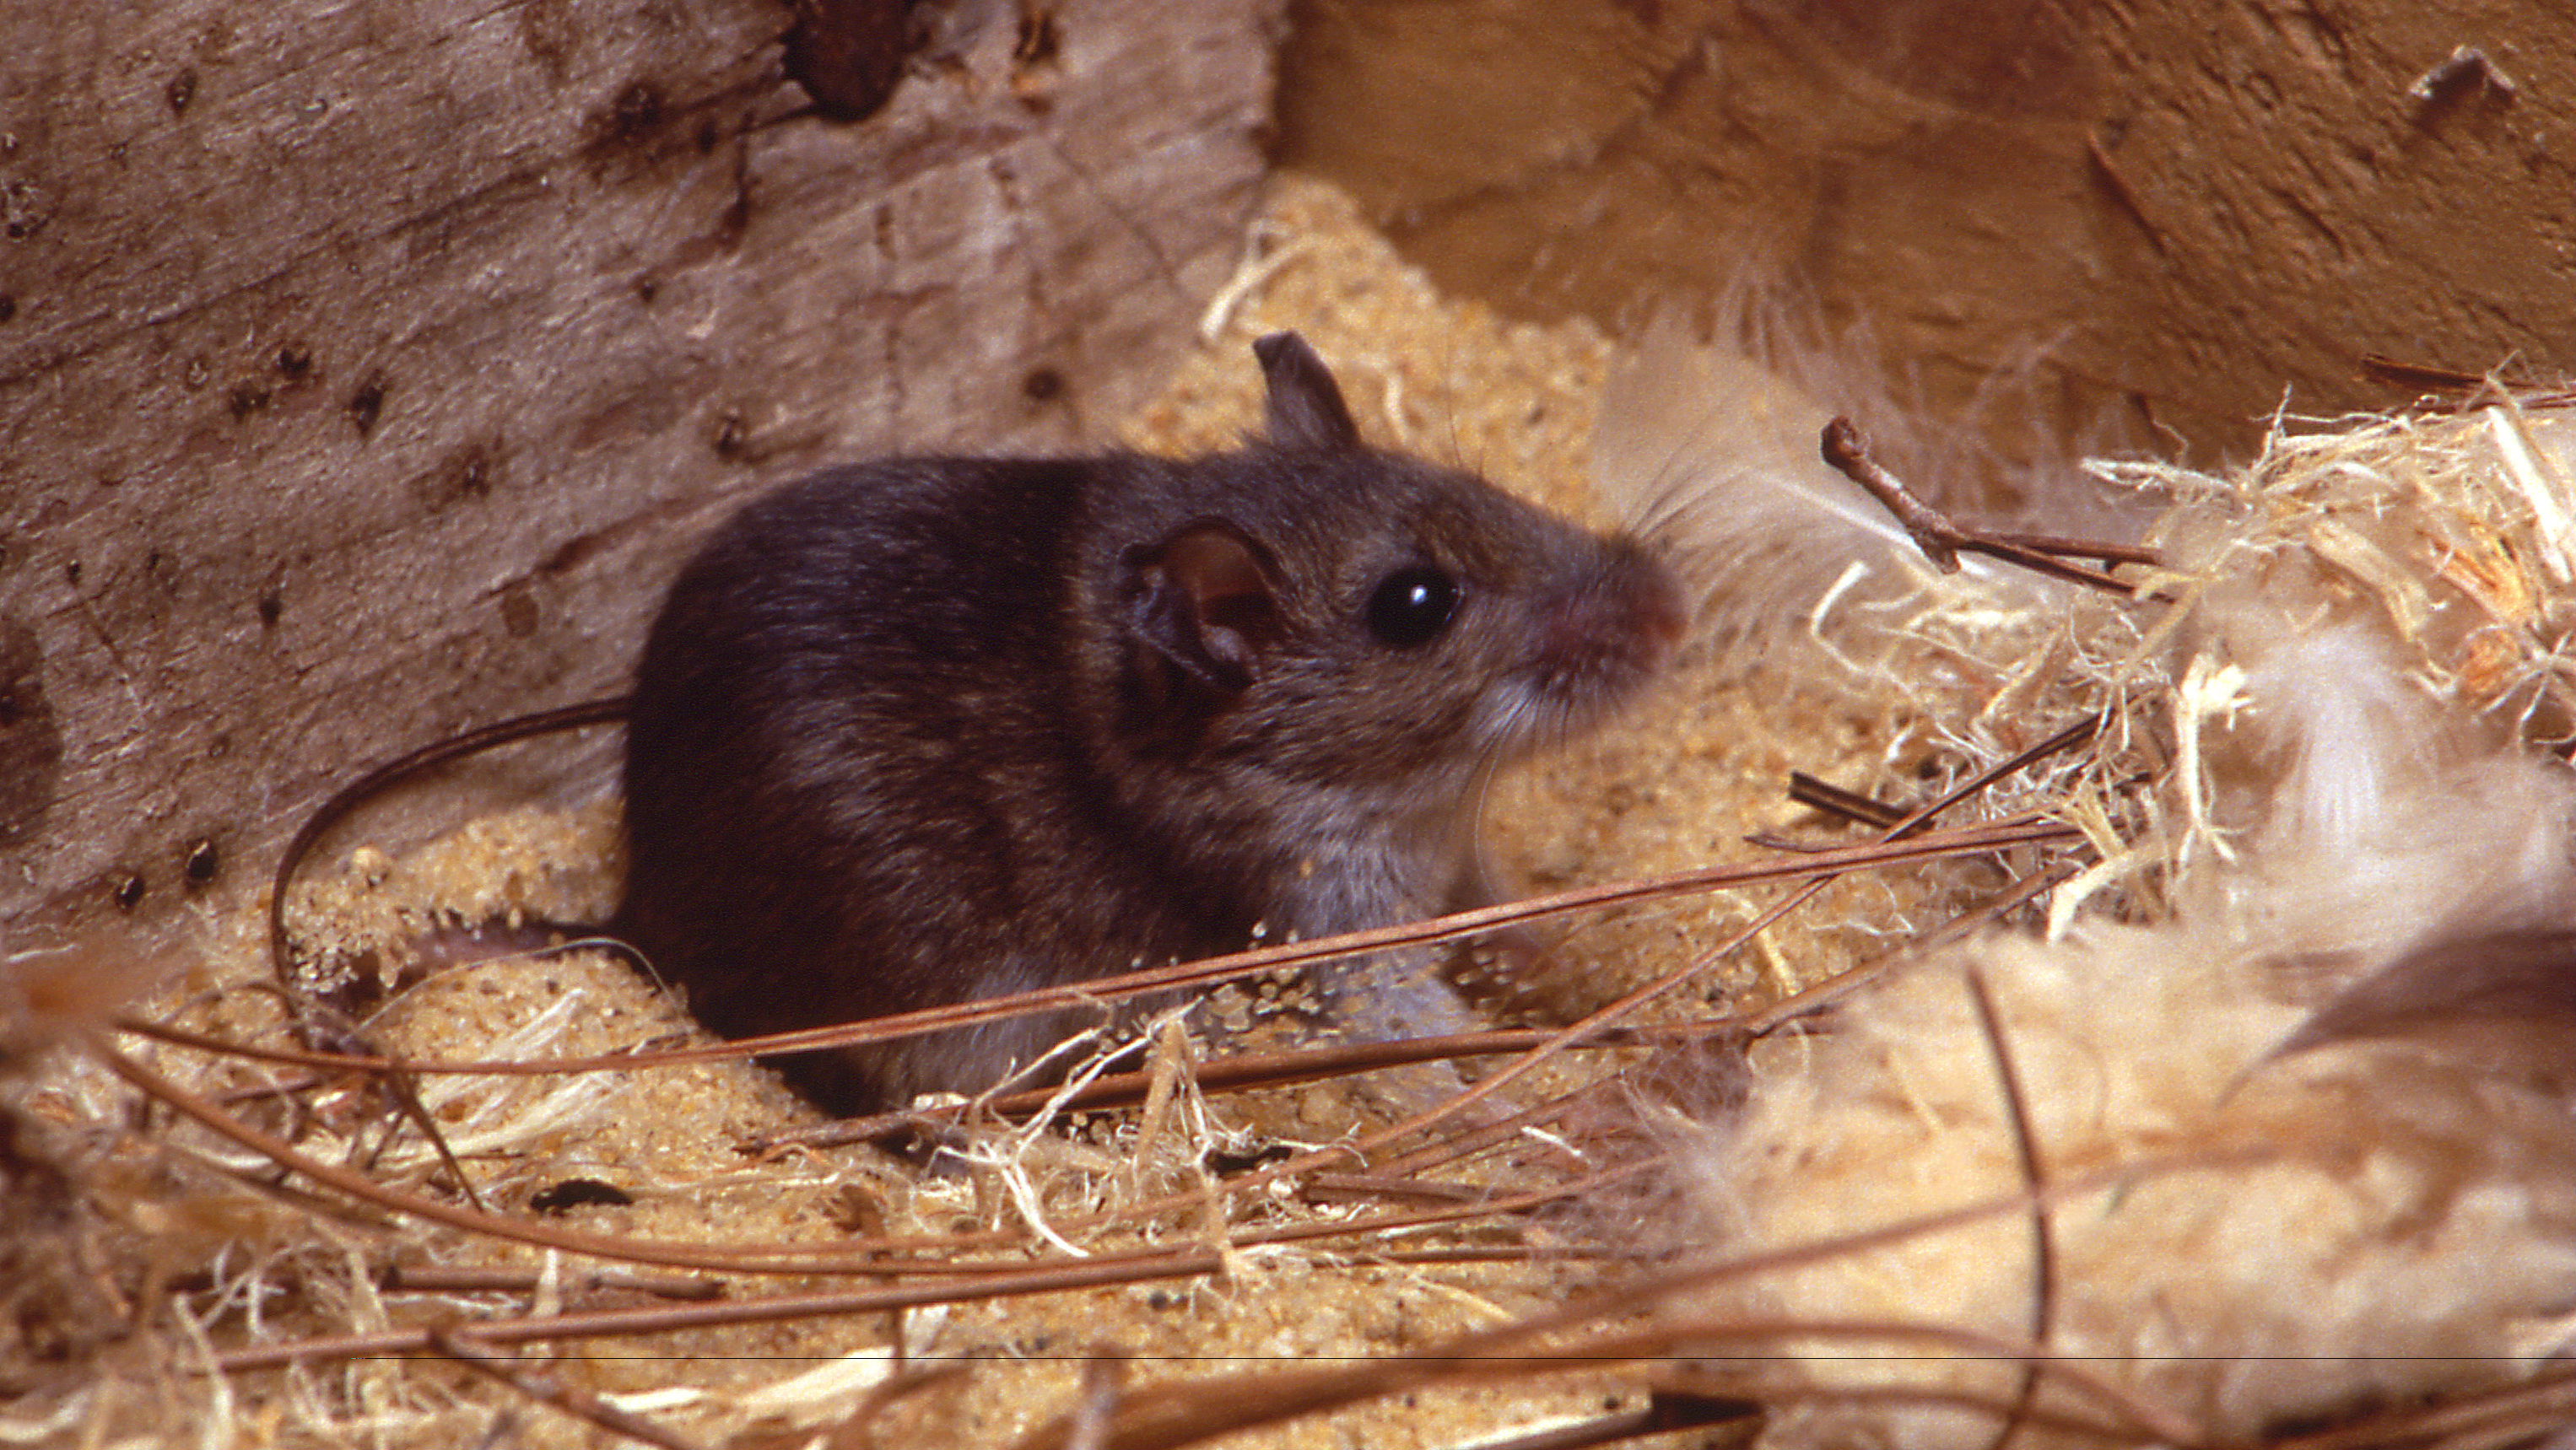 A mouse in a den.